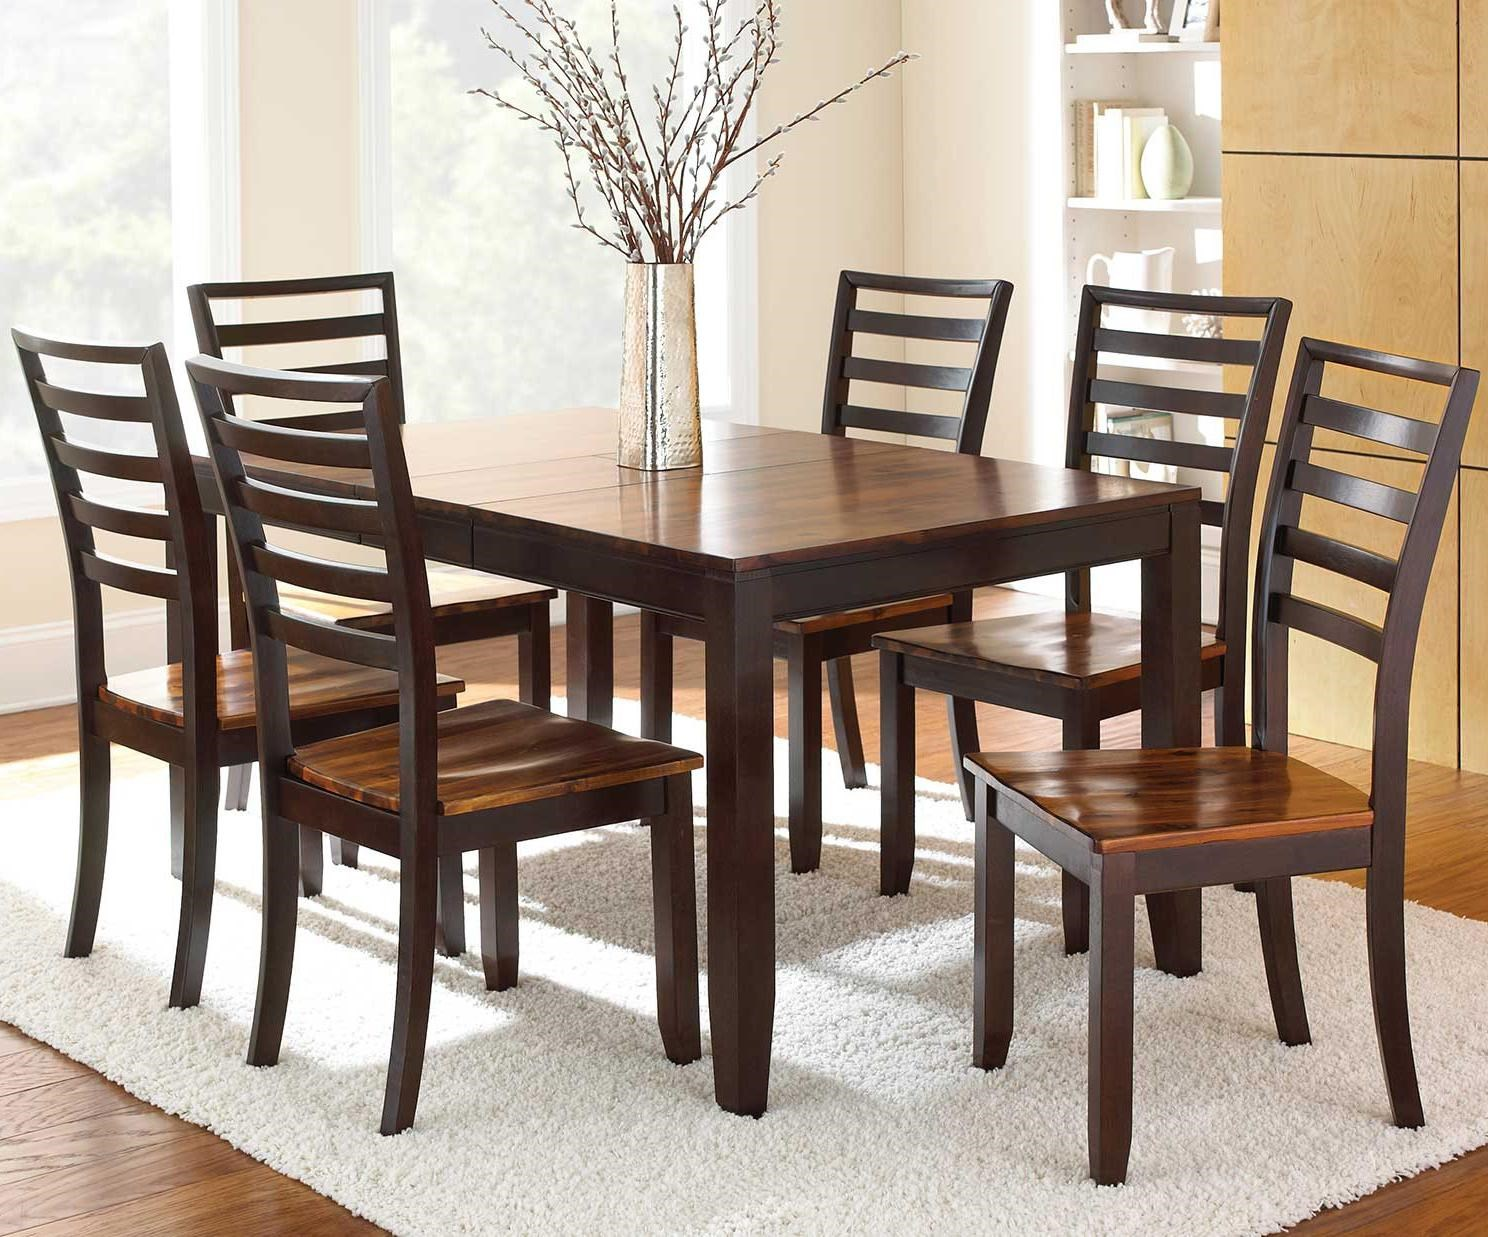 Steve Silver Abaco 7 Piece Leg Table And Ladder Back Chairs